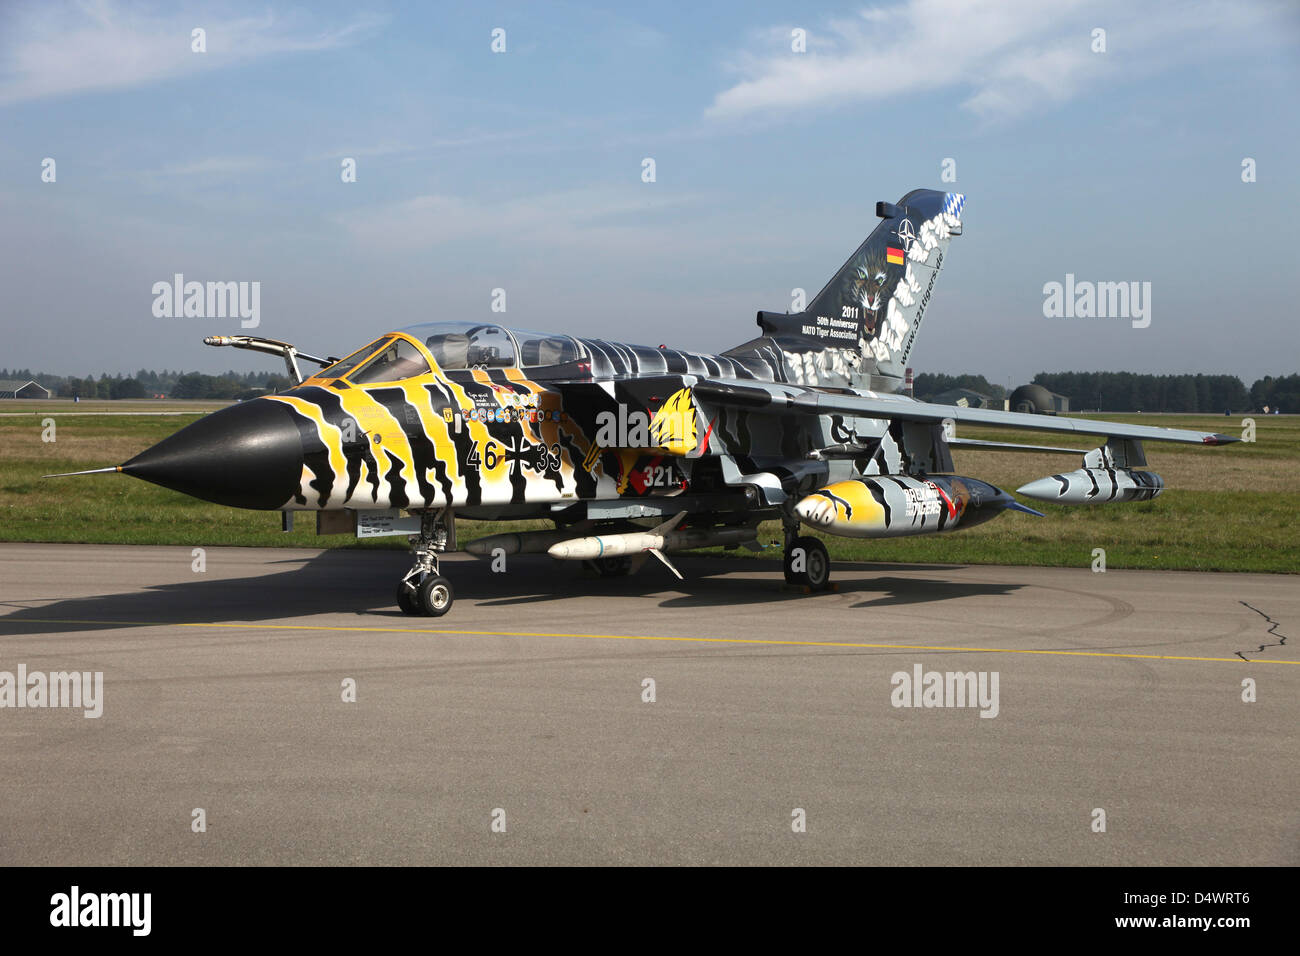 German Tornado Ecr Aircraft Stockfotos & German Tornado ...